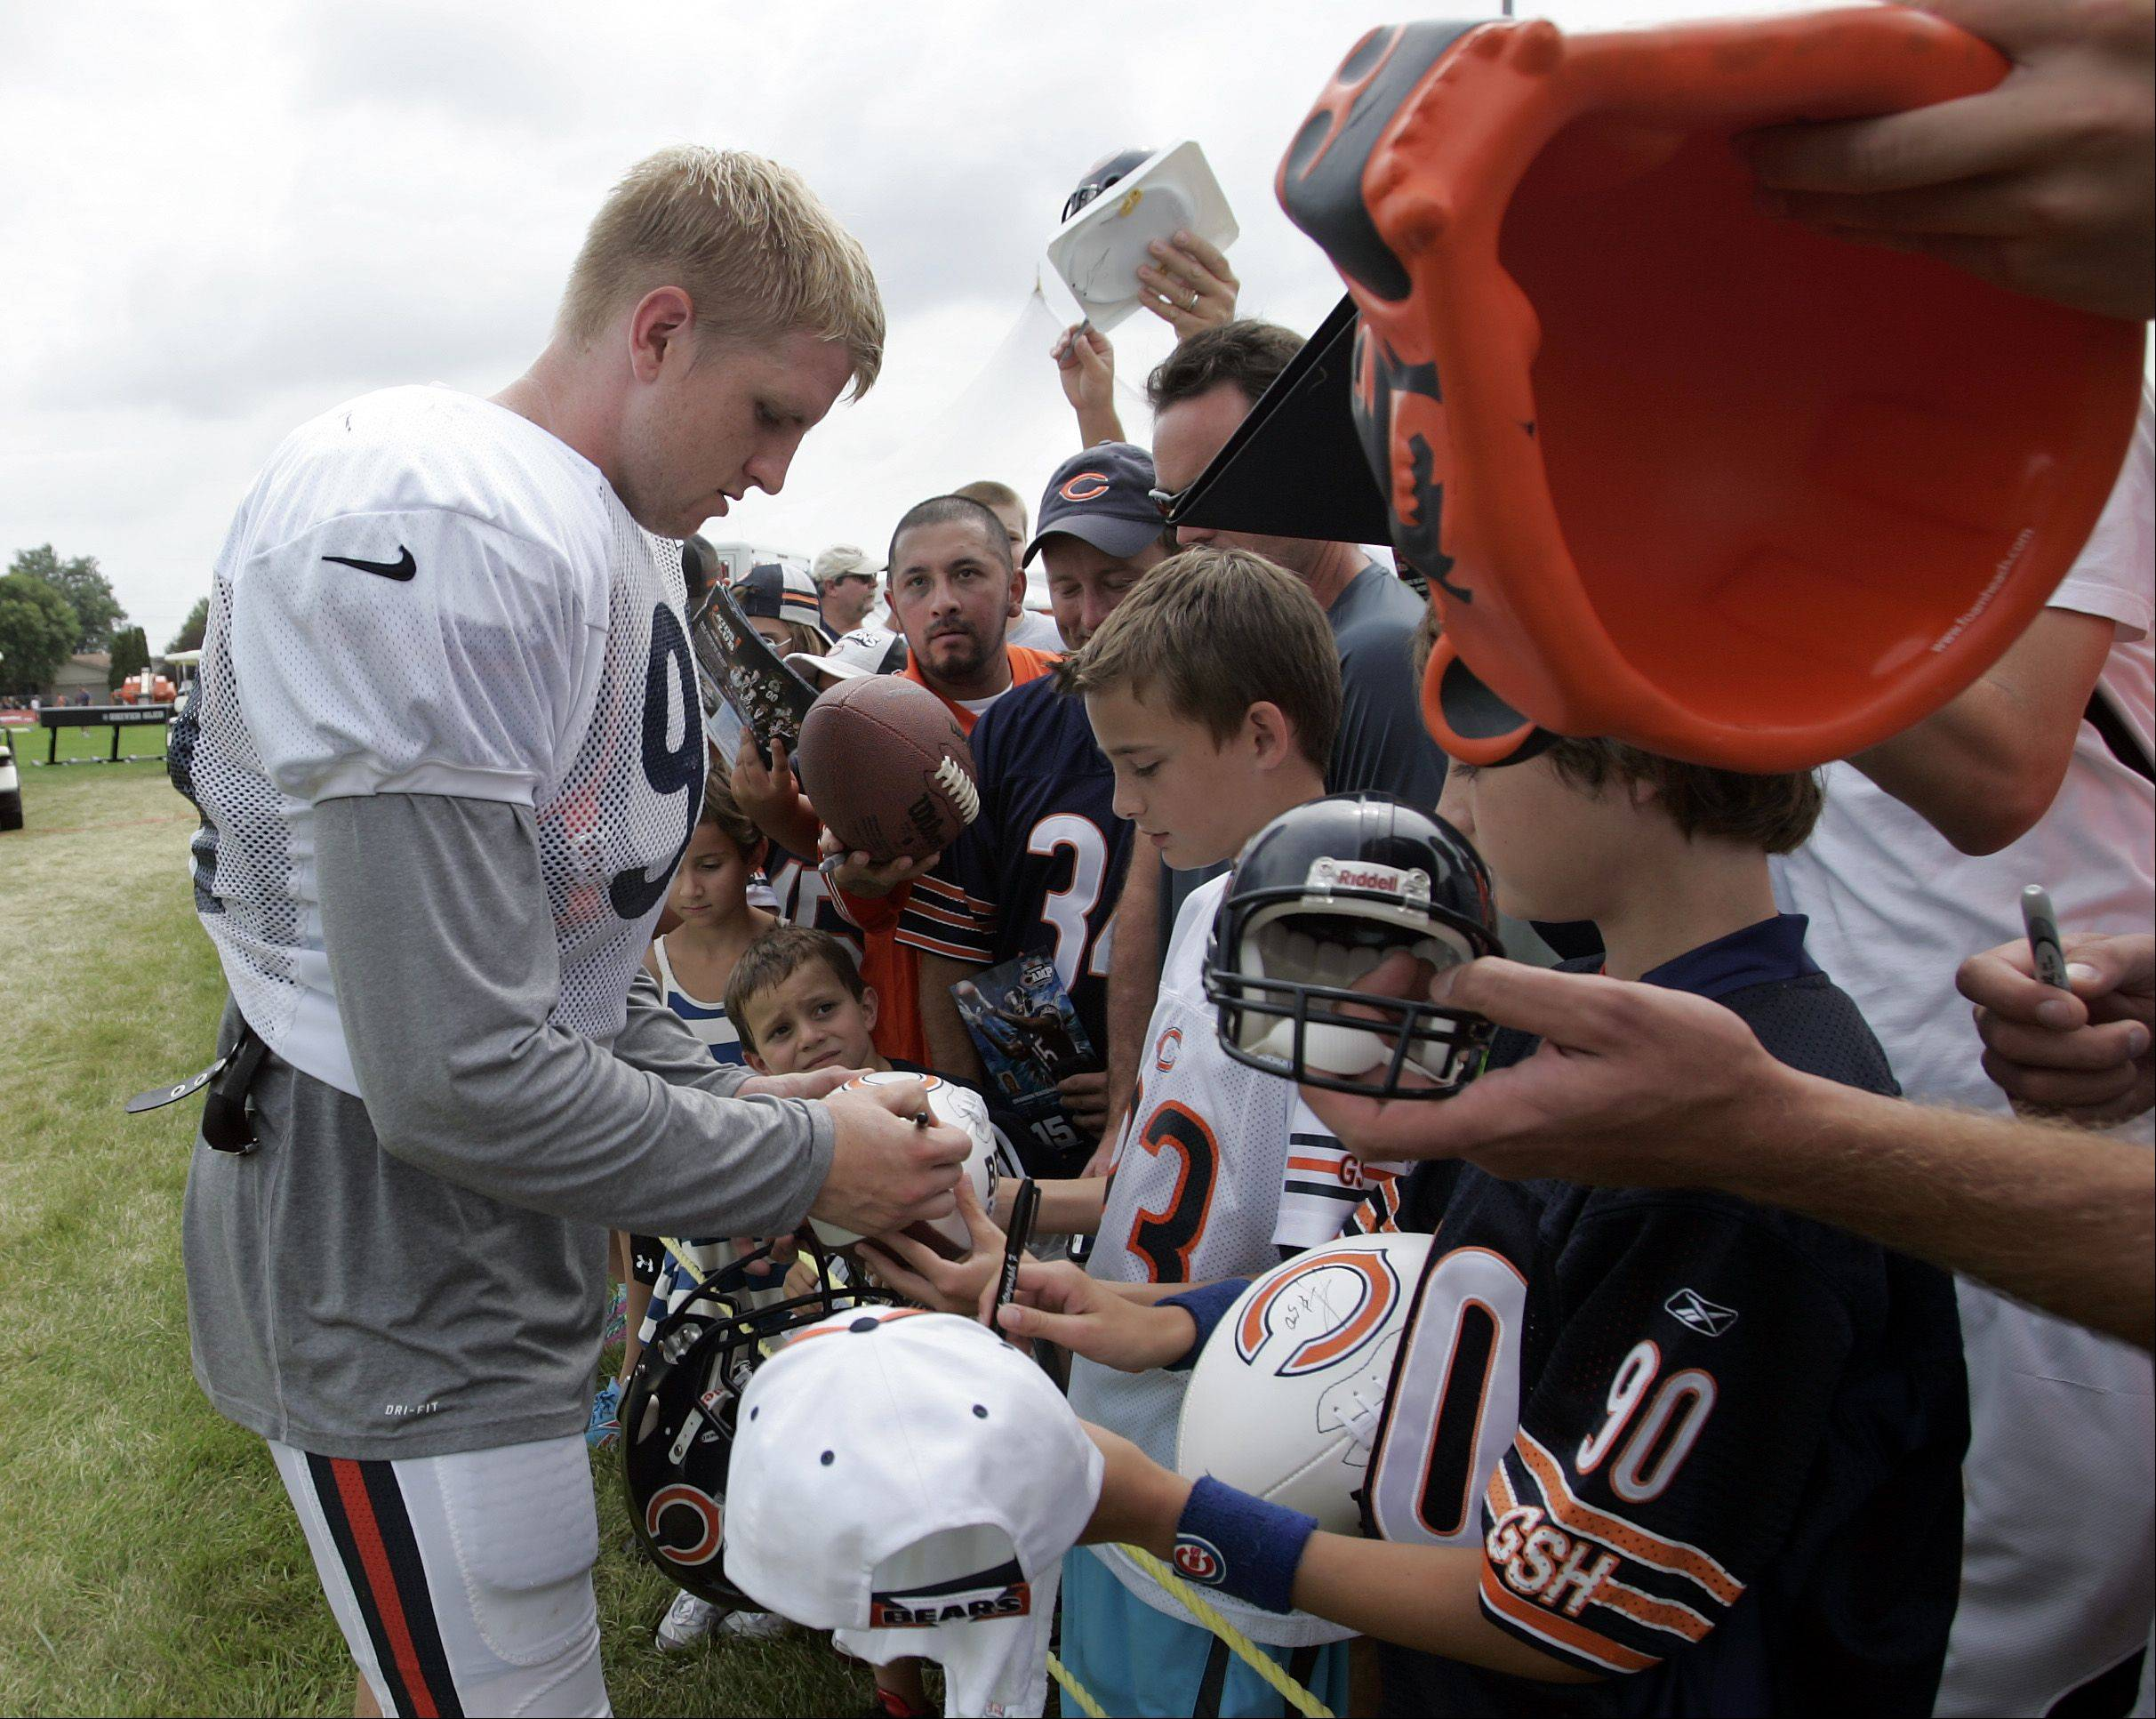 Bears defensive end Shea McClellin